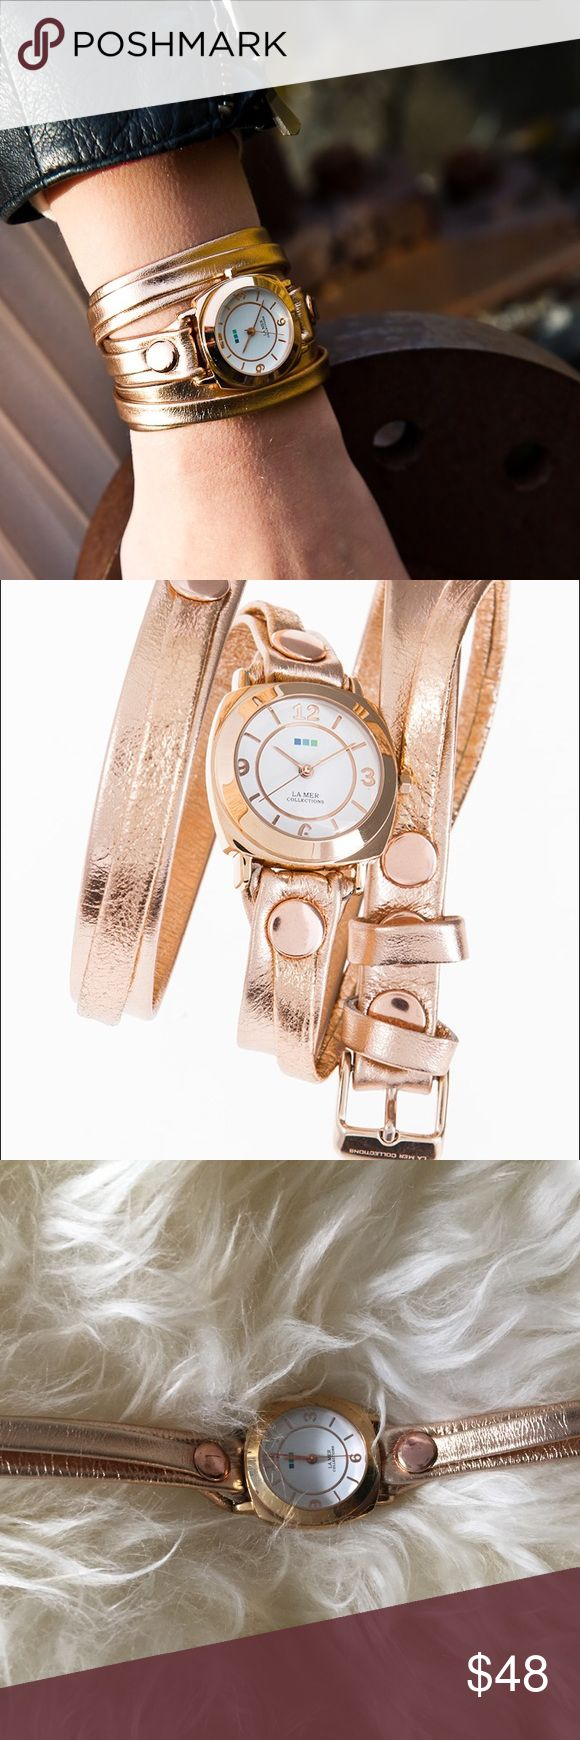 Rose gold double wrap La Mer watch This watch is one of their bestsellers. Only worn twice. Great condition but needs a new battery. La Mer Accessories Watches